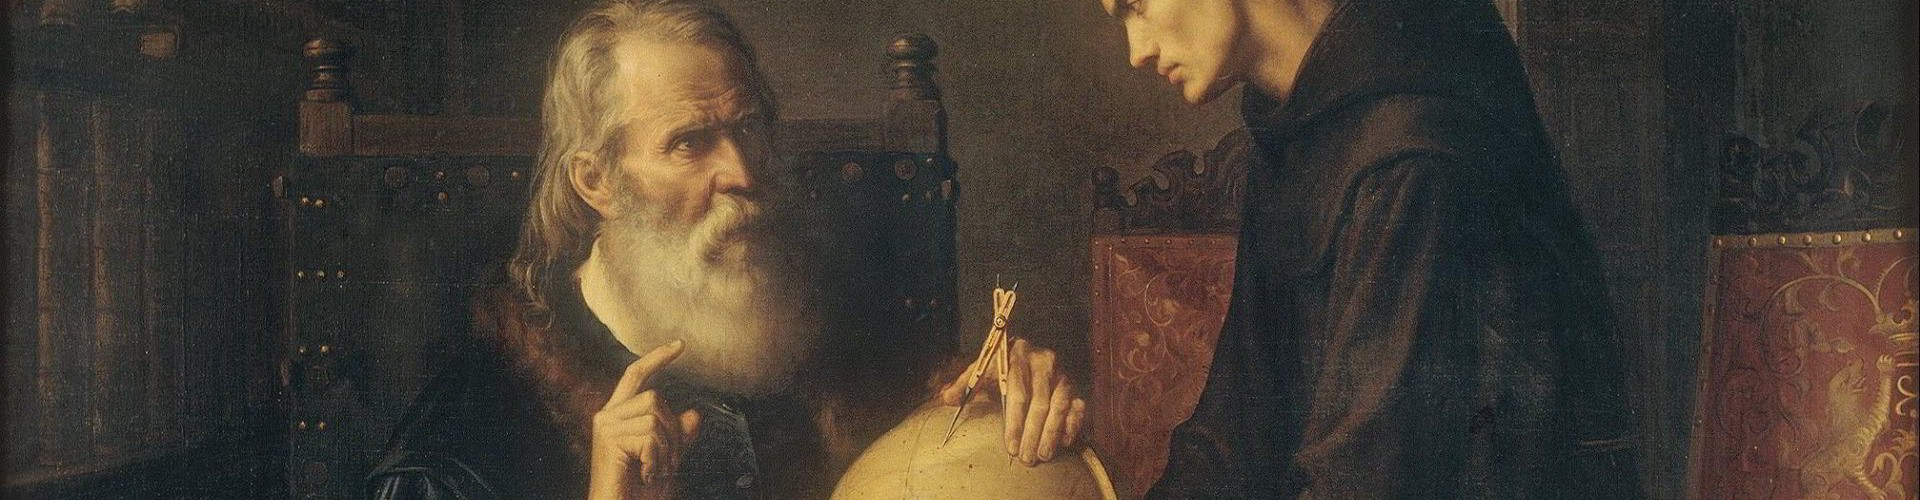 Galileo demonstrating the new astronomical theories at the University of Padua